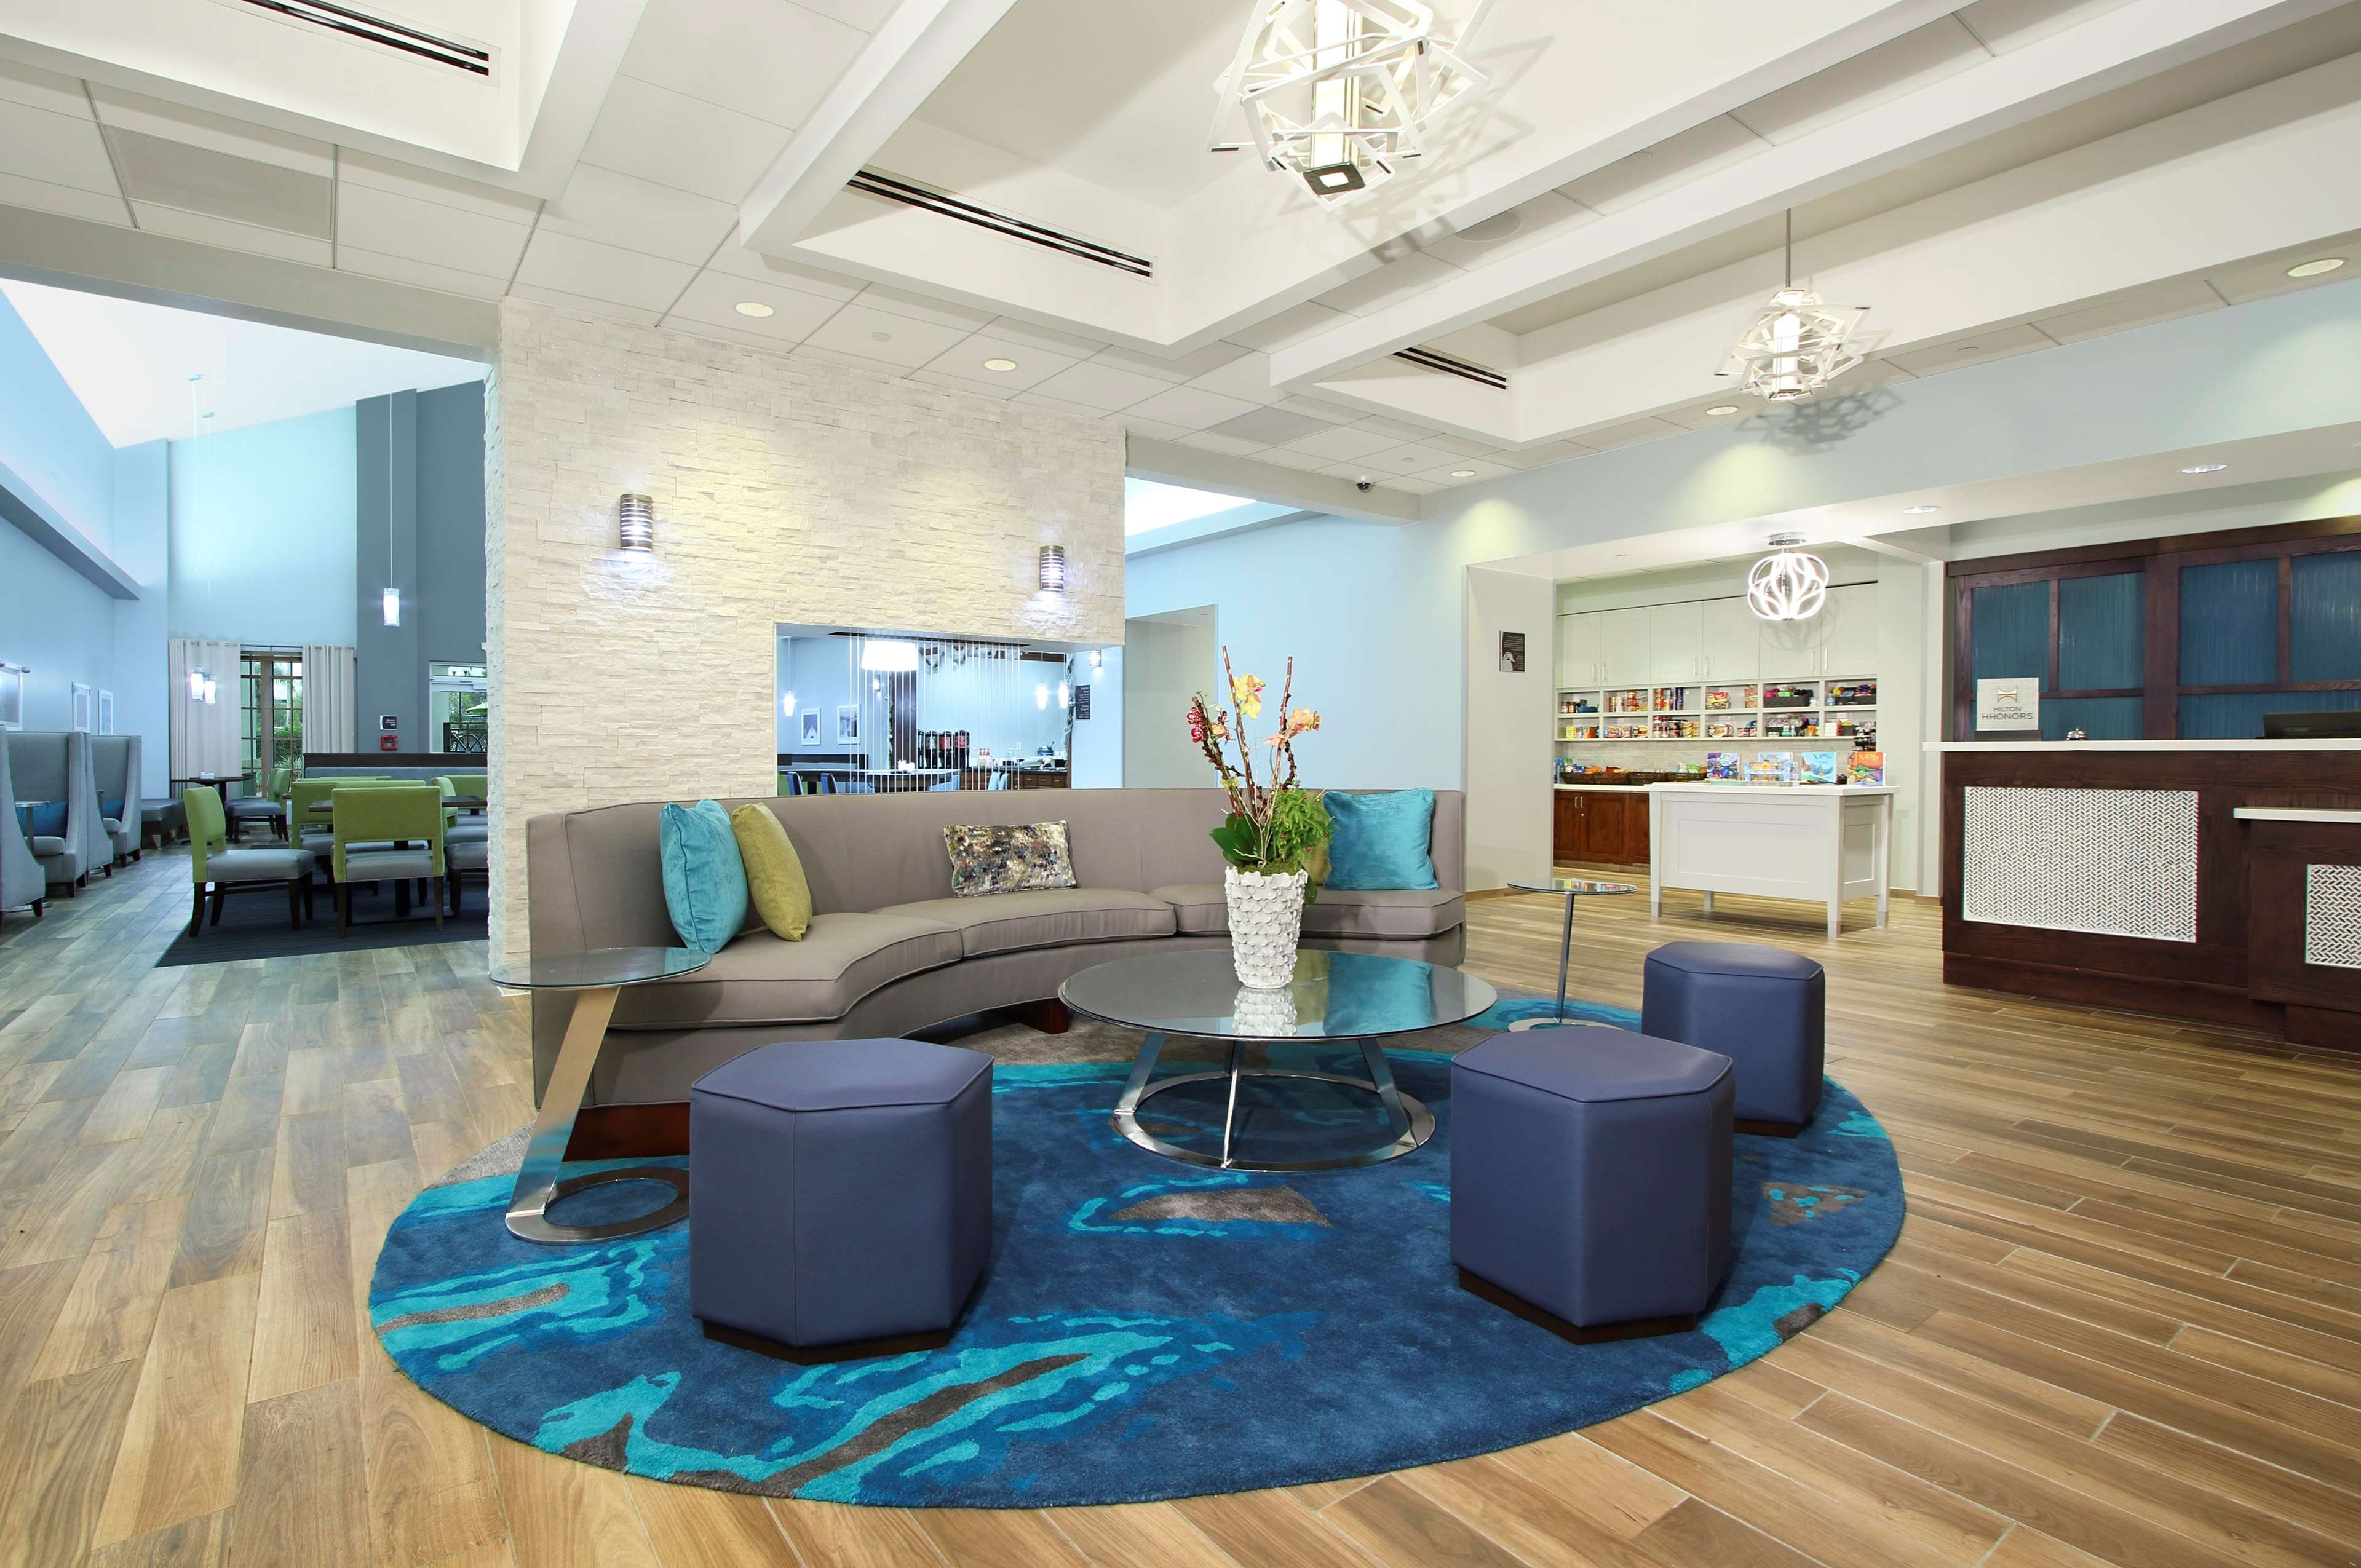 Homewood Suites by Hilton Miami - Airport West image 13